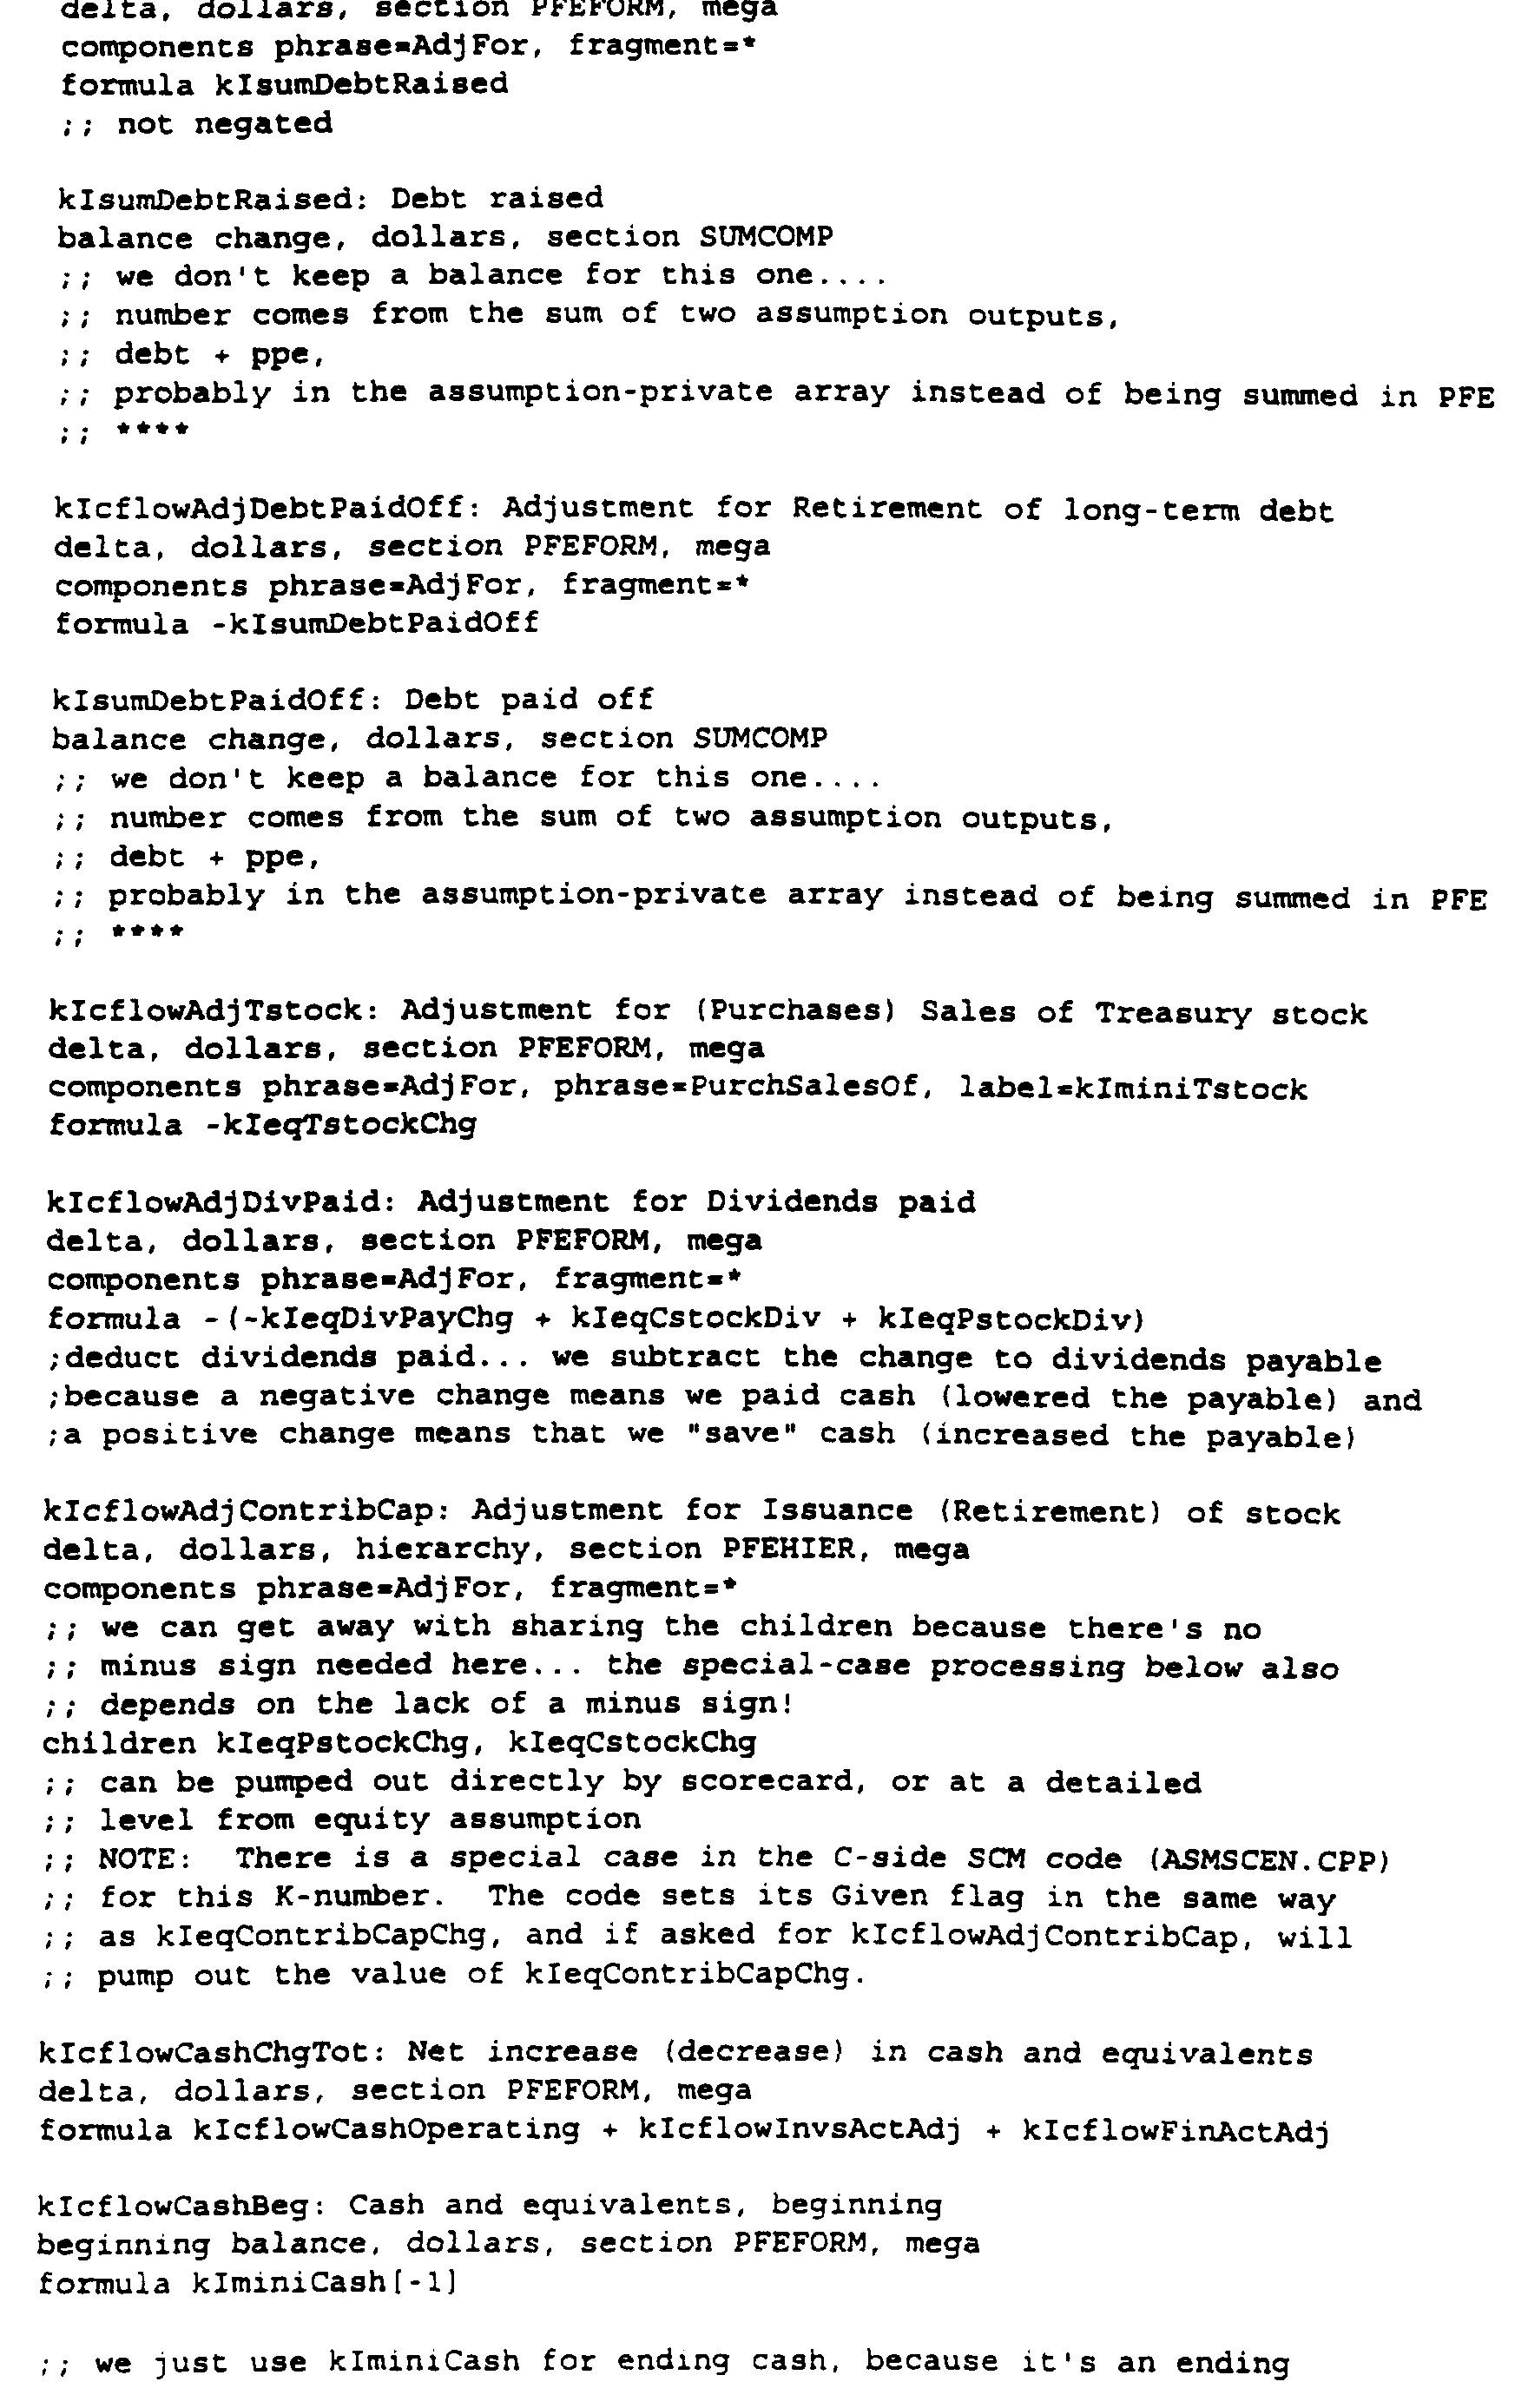 WO1996025717A1 - Computer based financial planning system